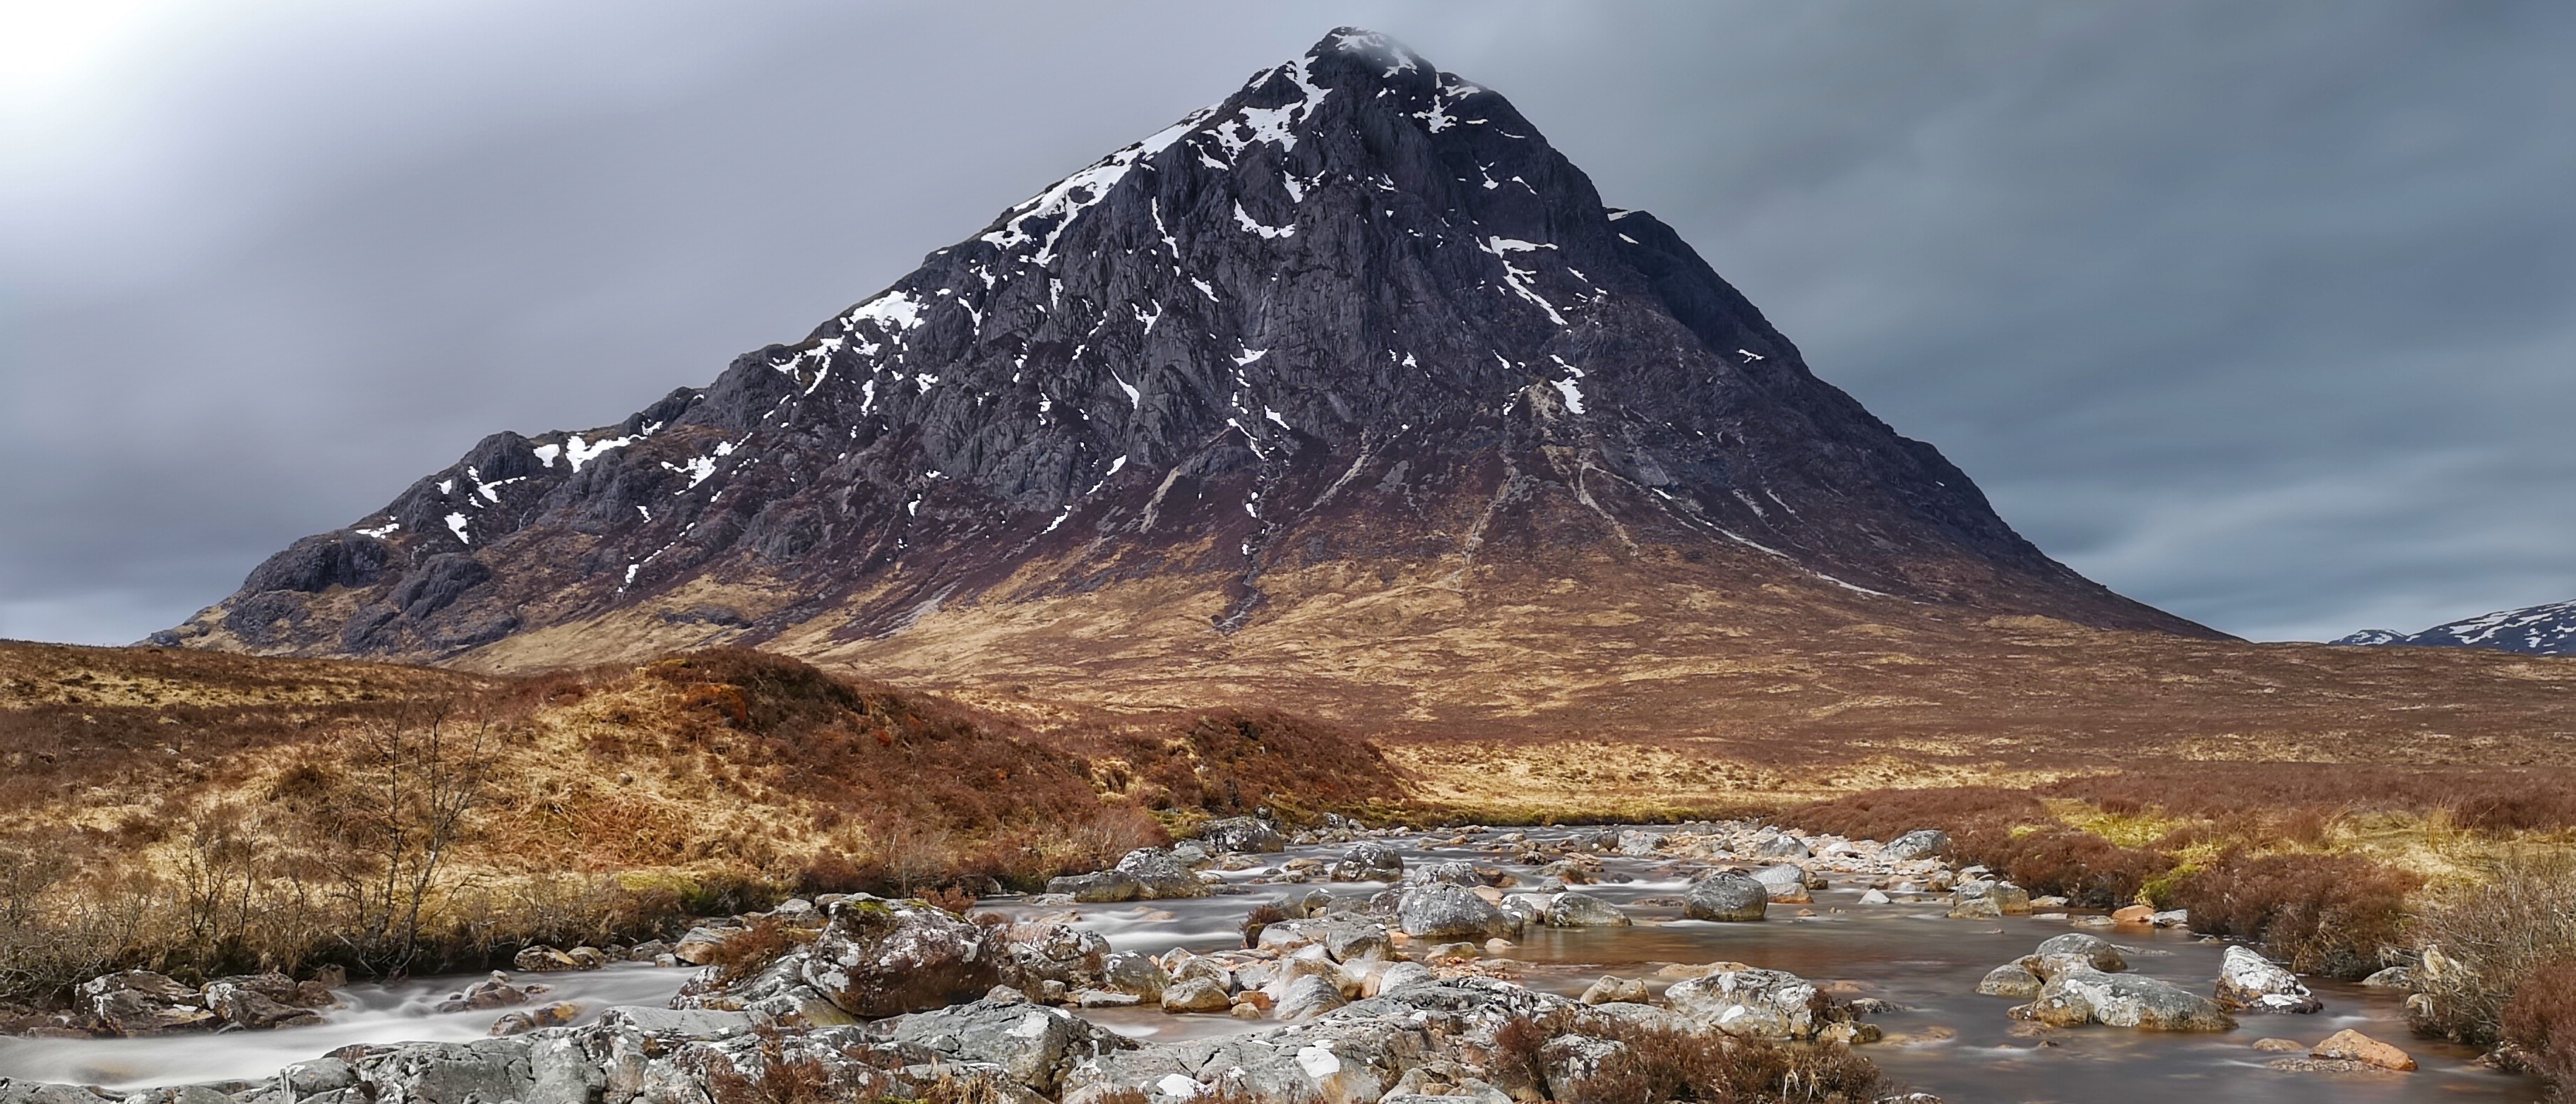 3 days on Skye with the P20 Pro